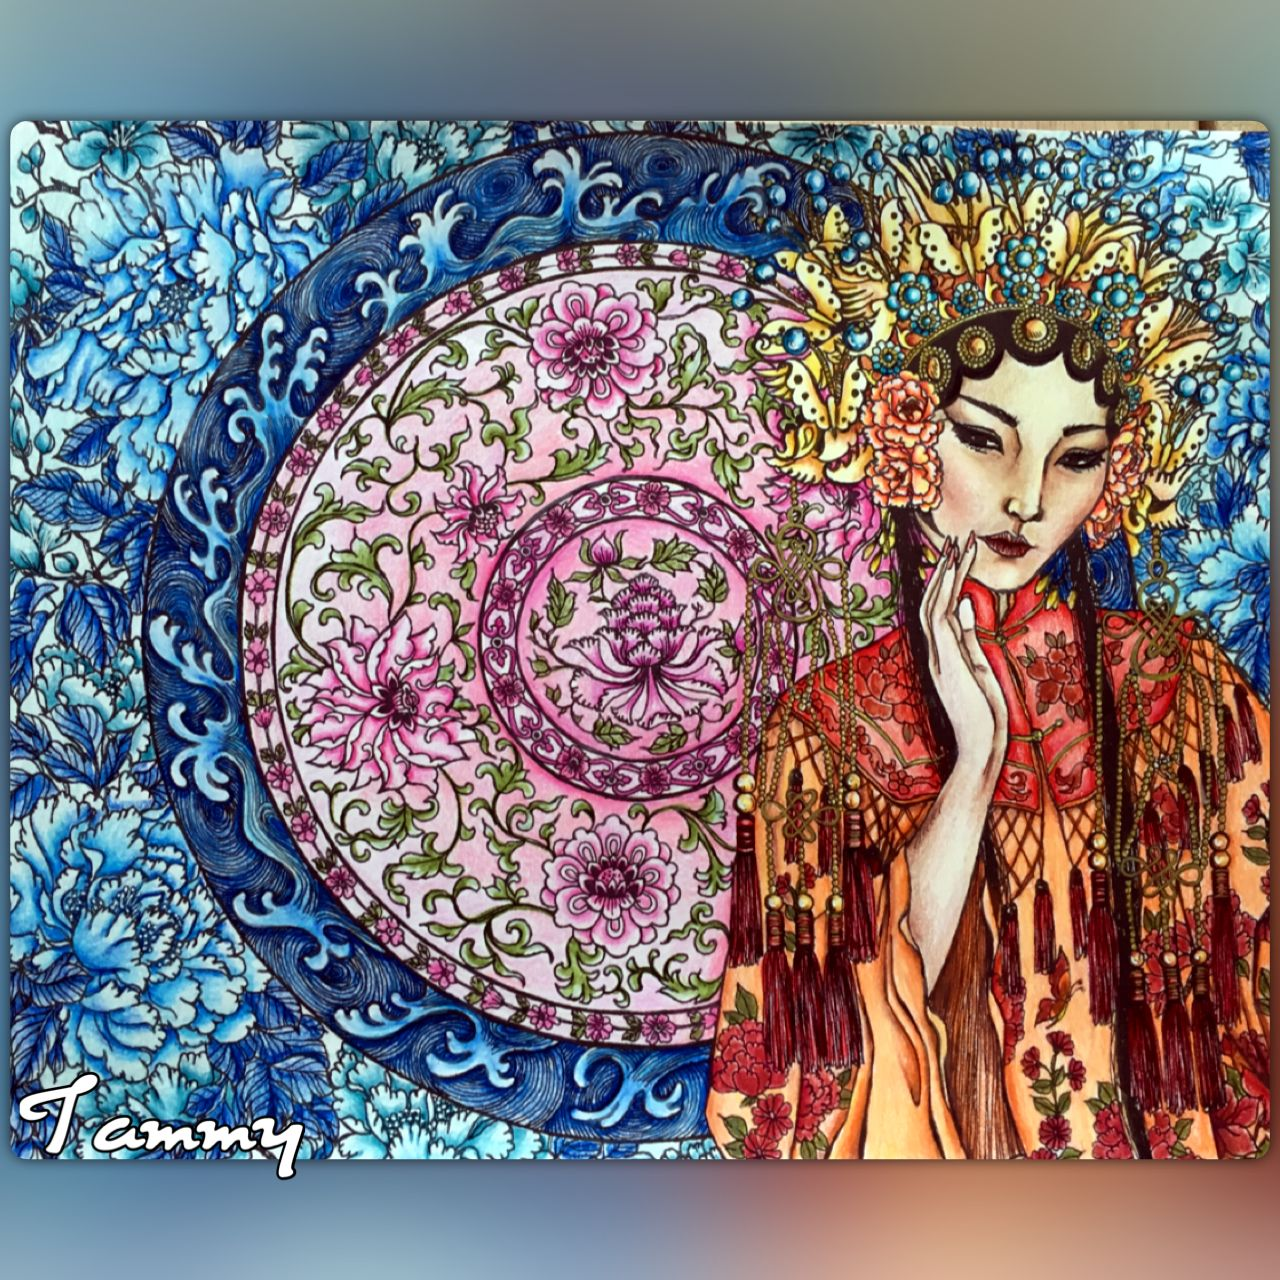 October Geisha Moon Blossoms By Katrina Pallon Geisha Color Inspiration Color